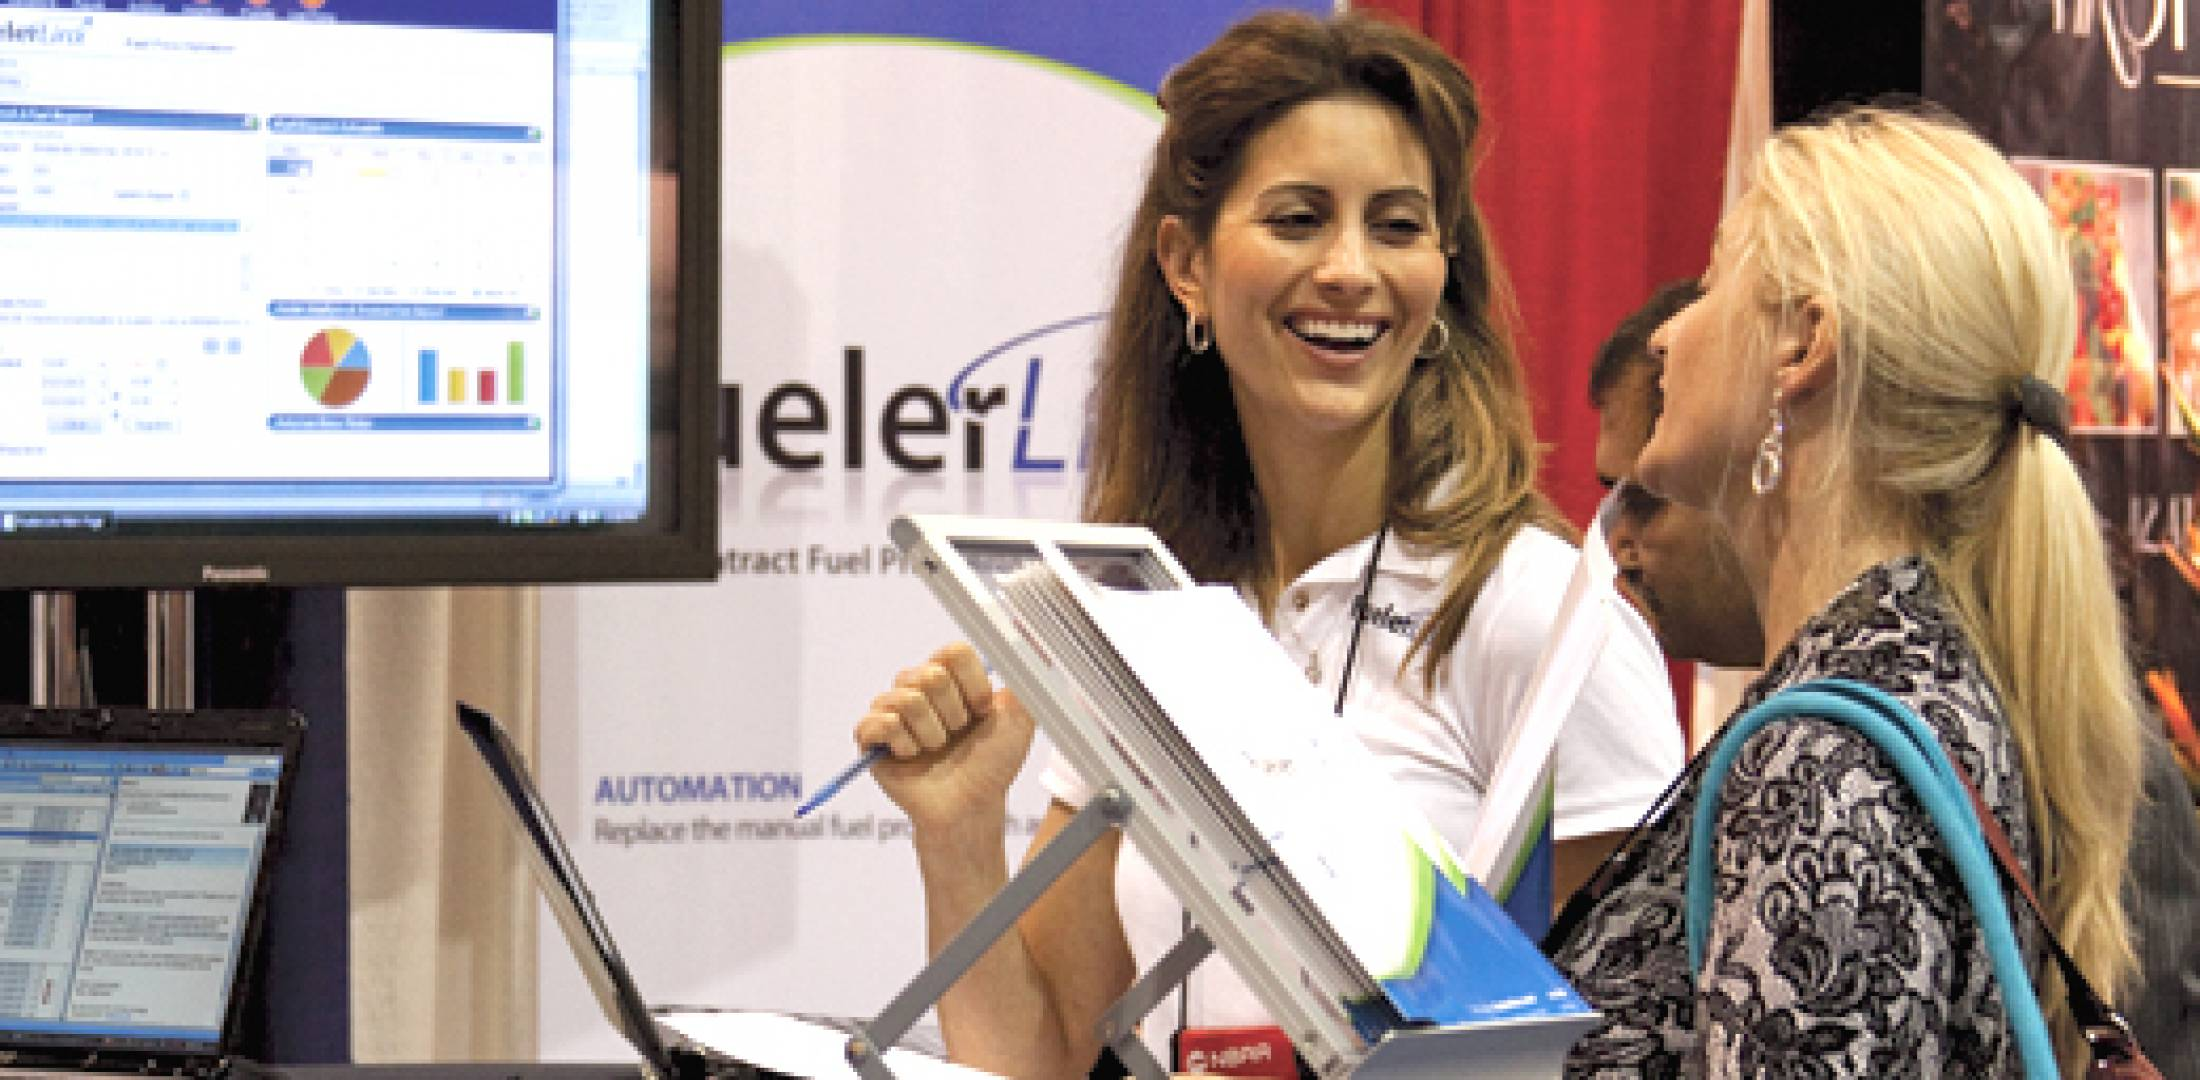 This year's Schedulers & Dispatchers event attracted nearly 2,300 attendees f...